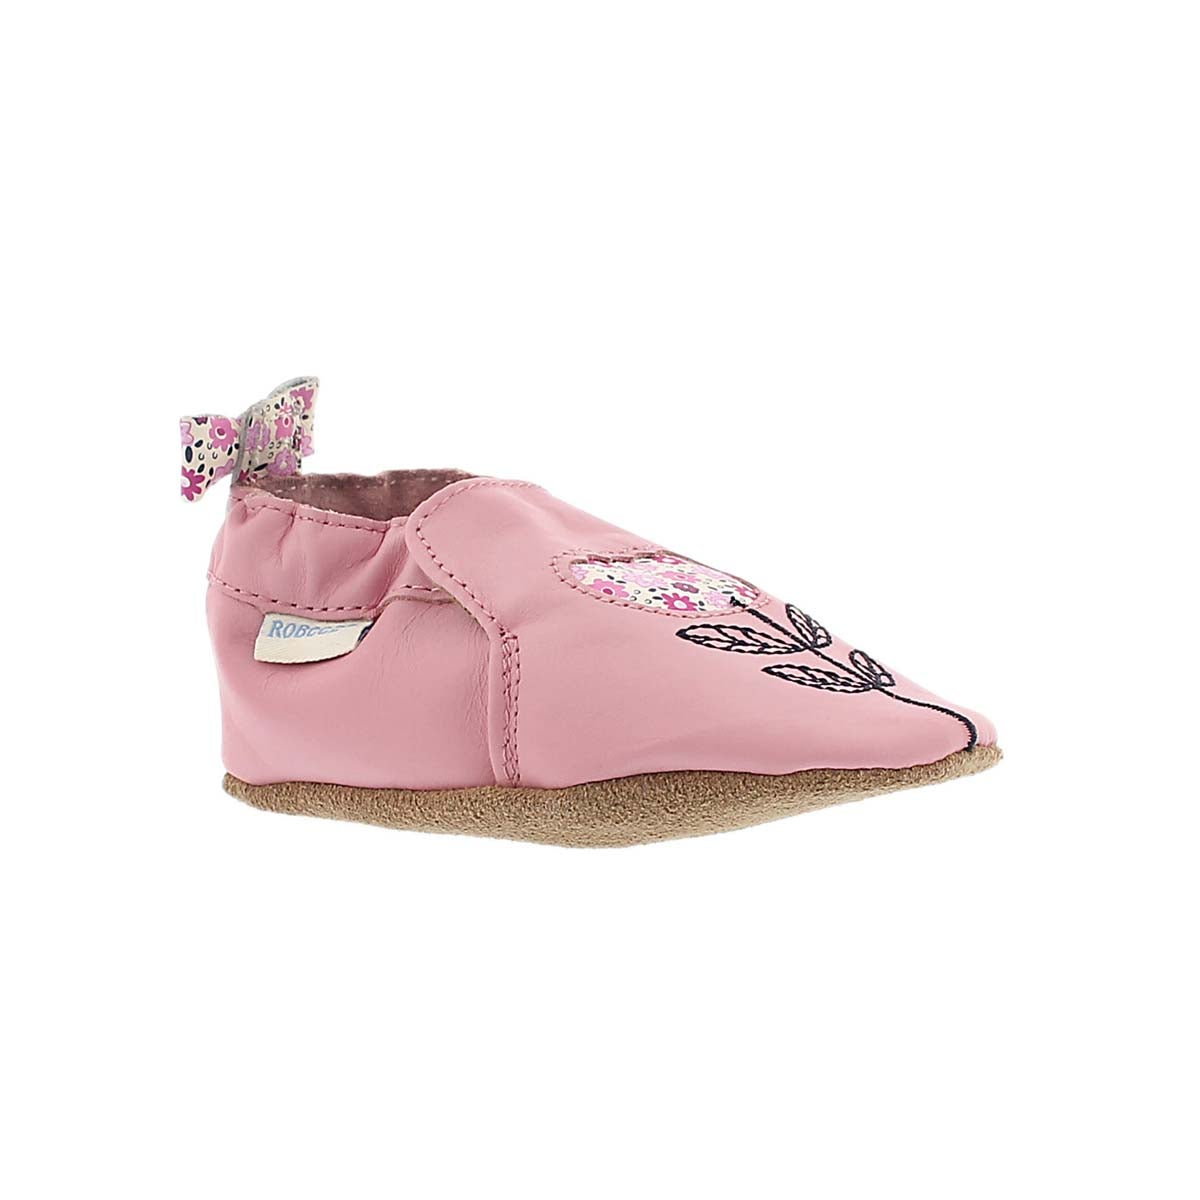 Infants' TINA TULIP pink soft slippers